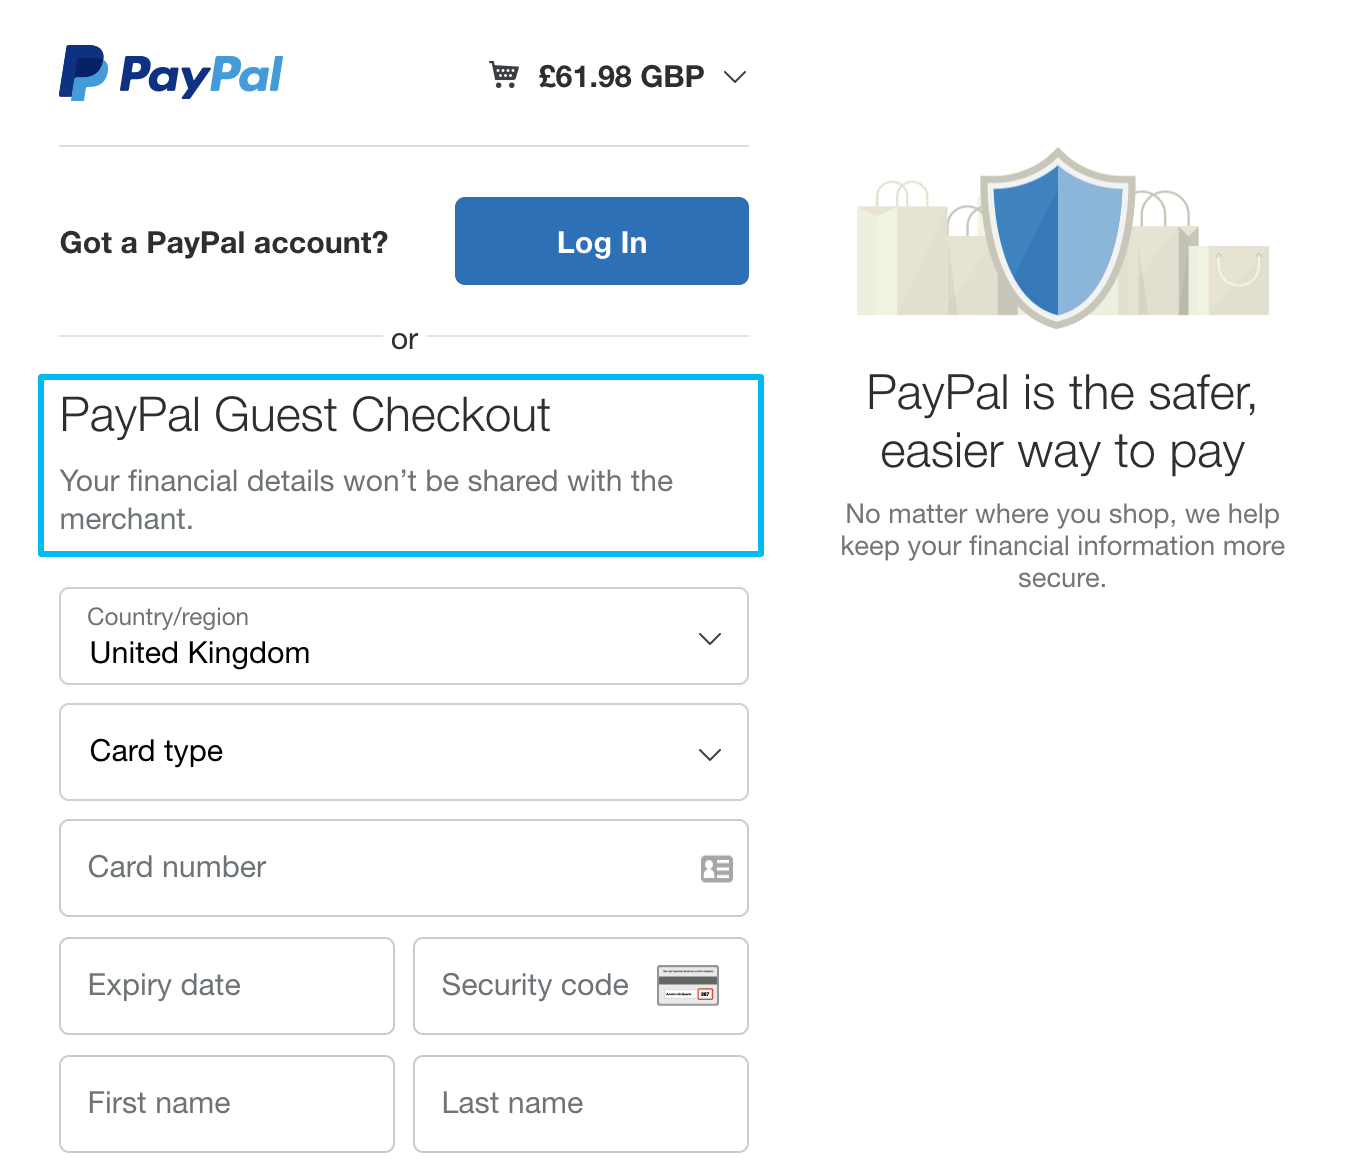 paypal-payment-img-03.jpg